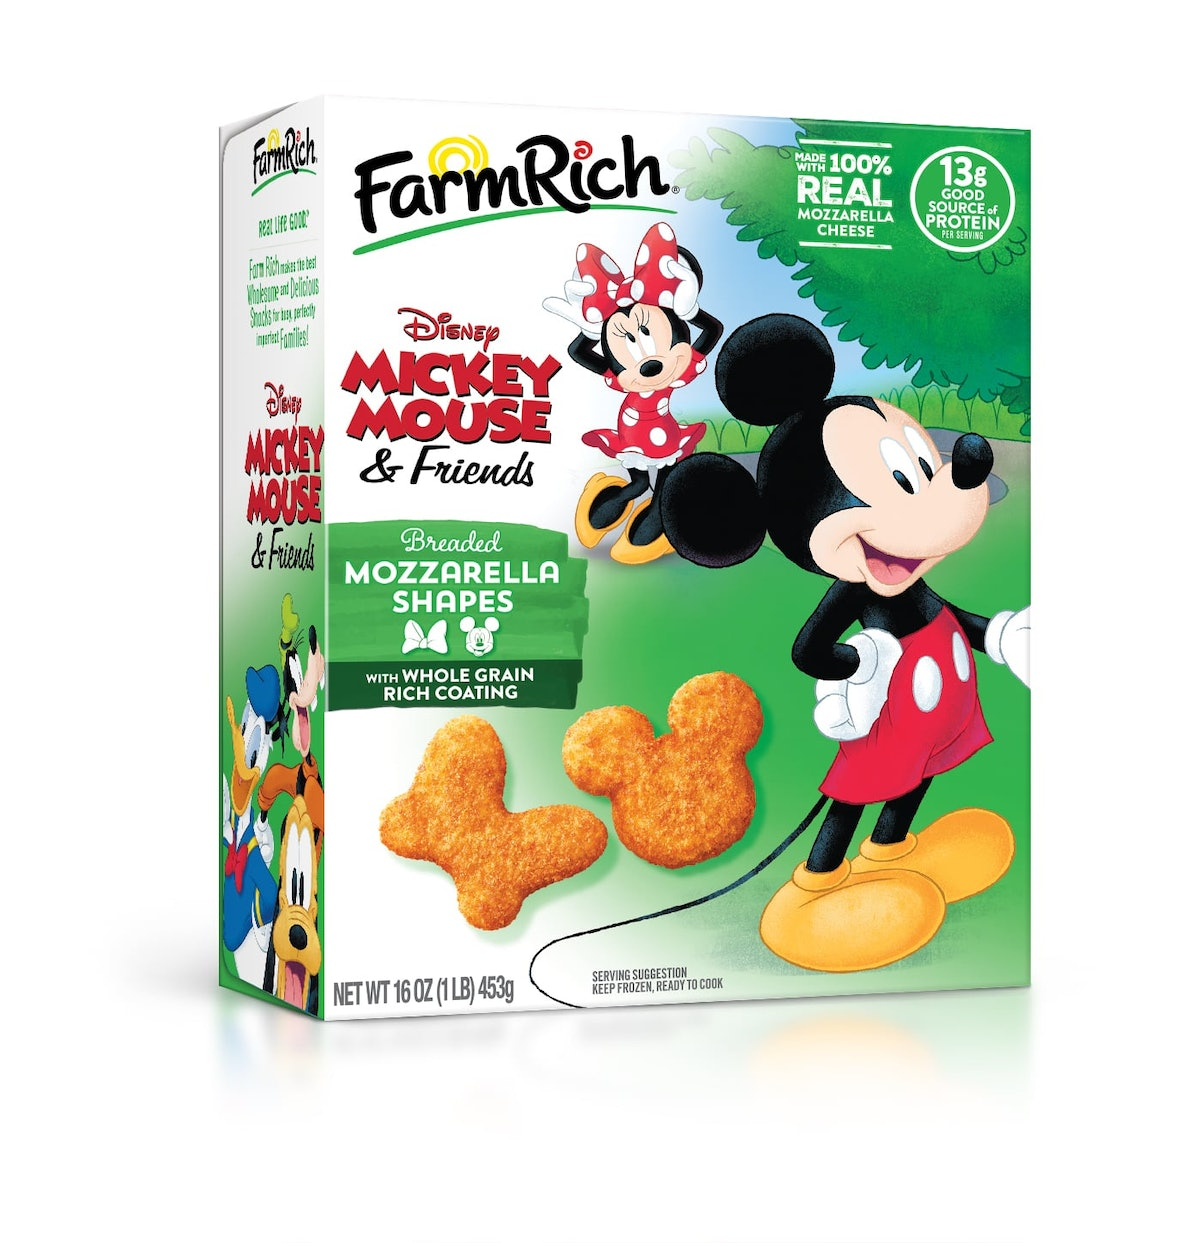 Here's where to buy Farm Rich's Disney Mickey Mouse and Friends Mozzarella Shapes for a fun snack.